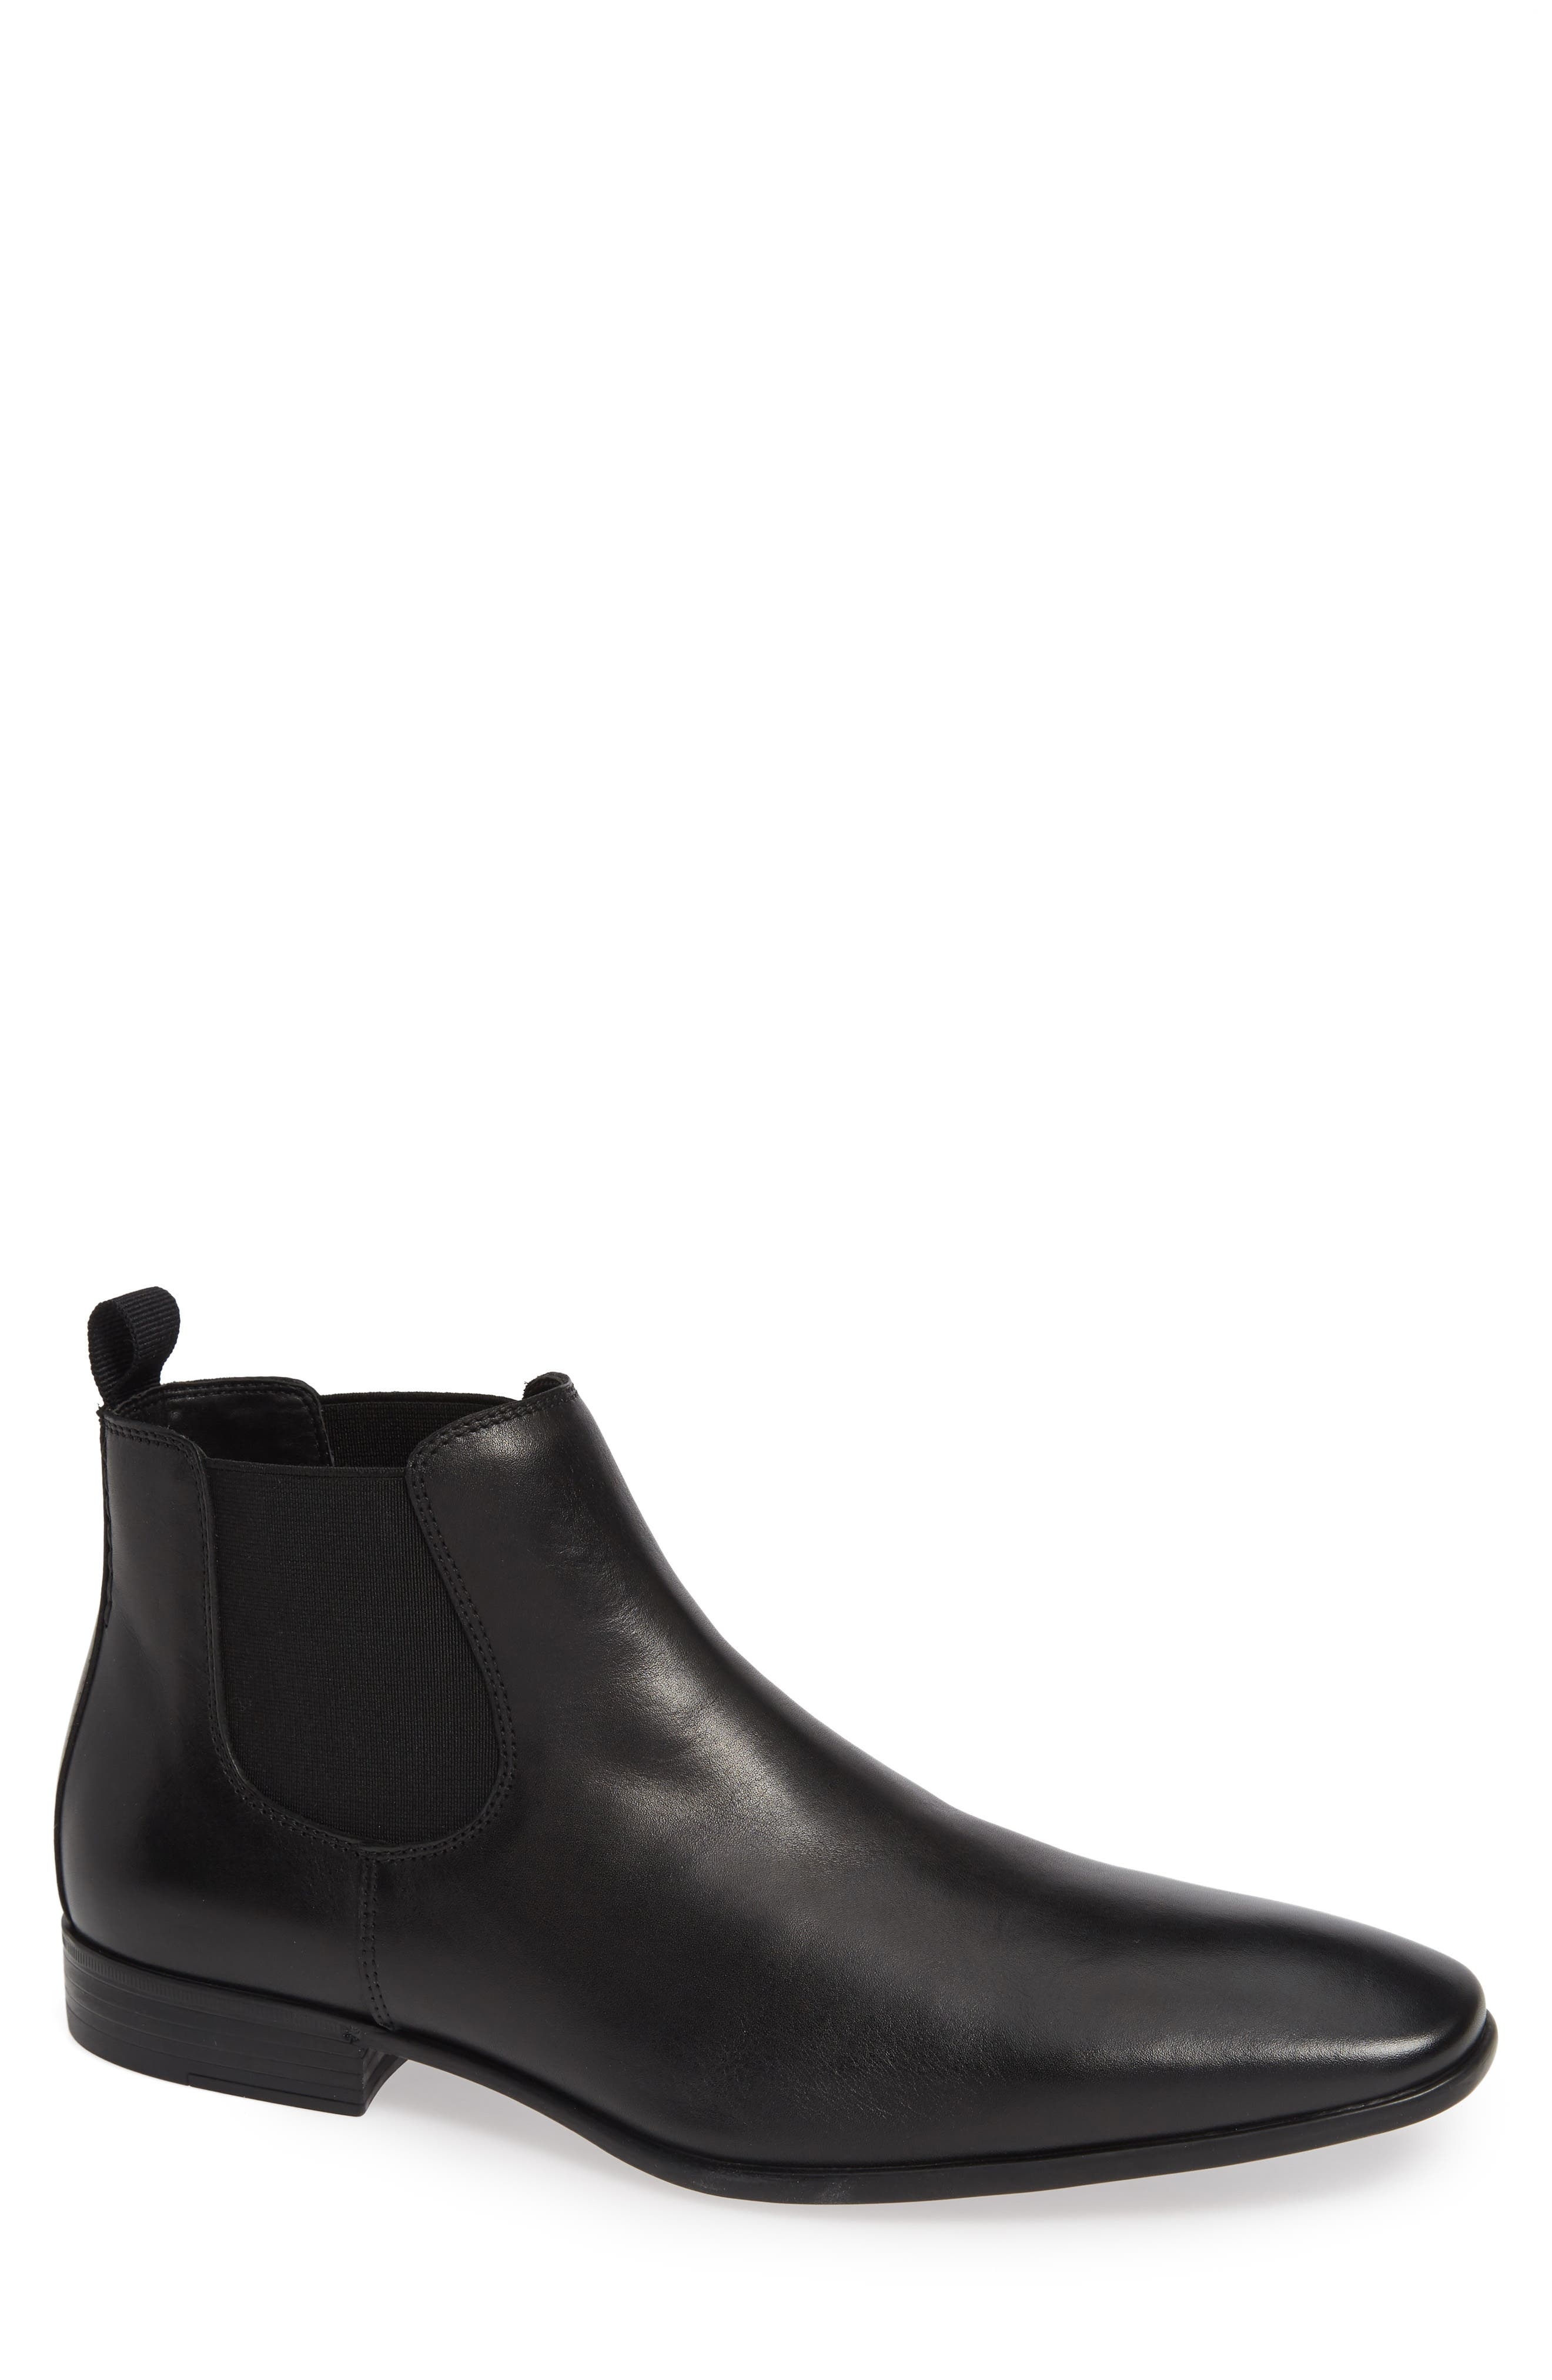 THE RAIL Knox Chelsea Boot, Main, color, BLACK LEATHER